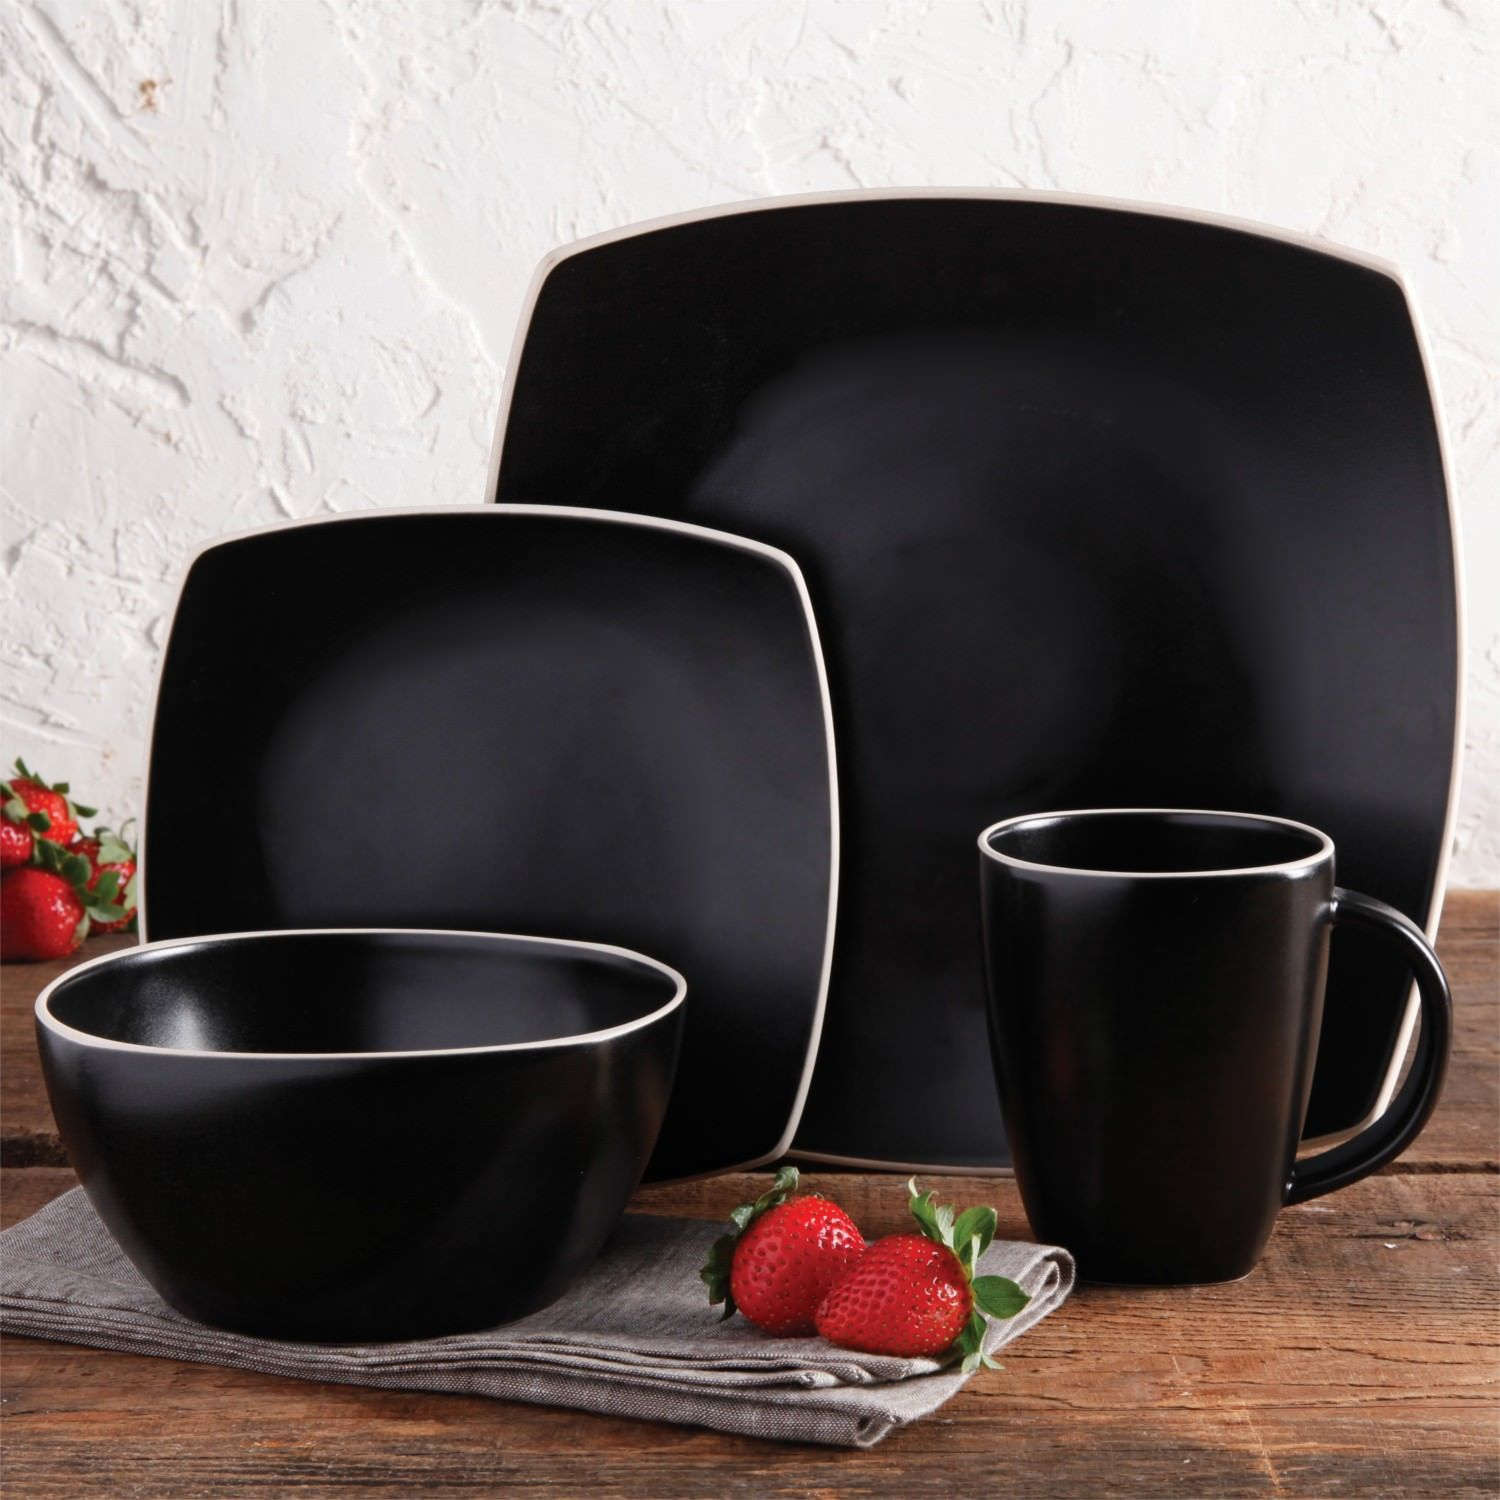 Black Matte Dinnerware Set Kitchen Dining And 49 Similar Items